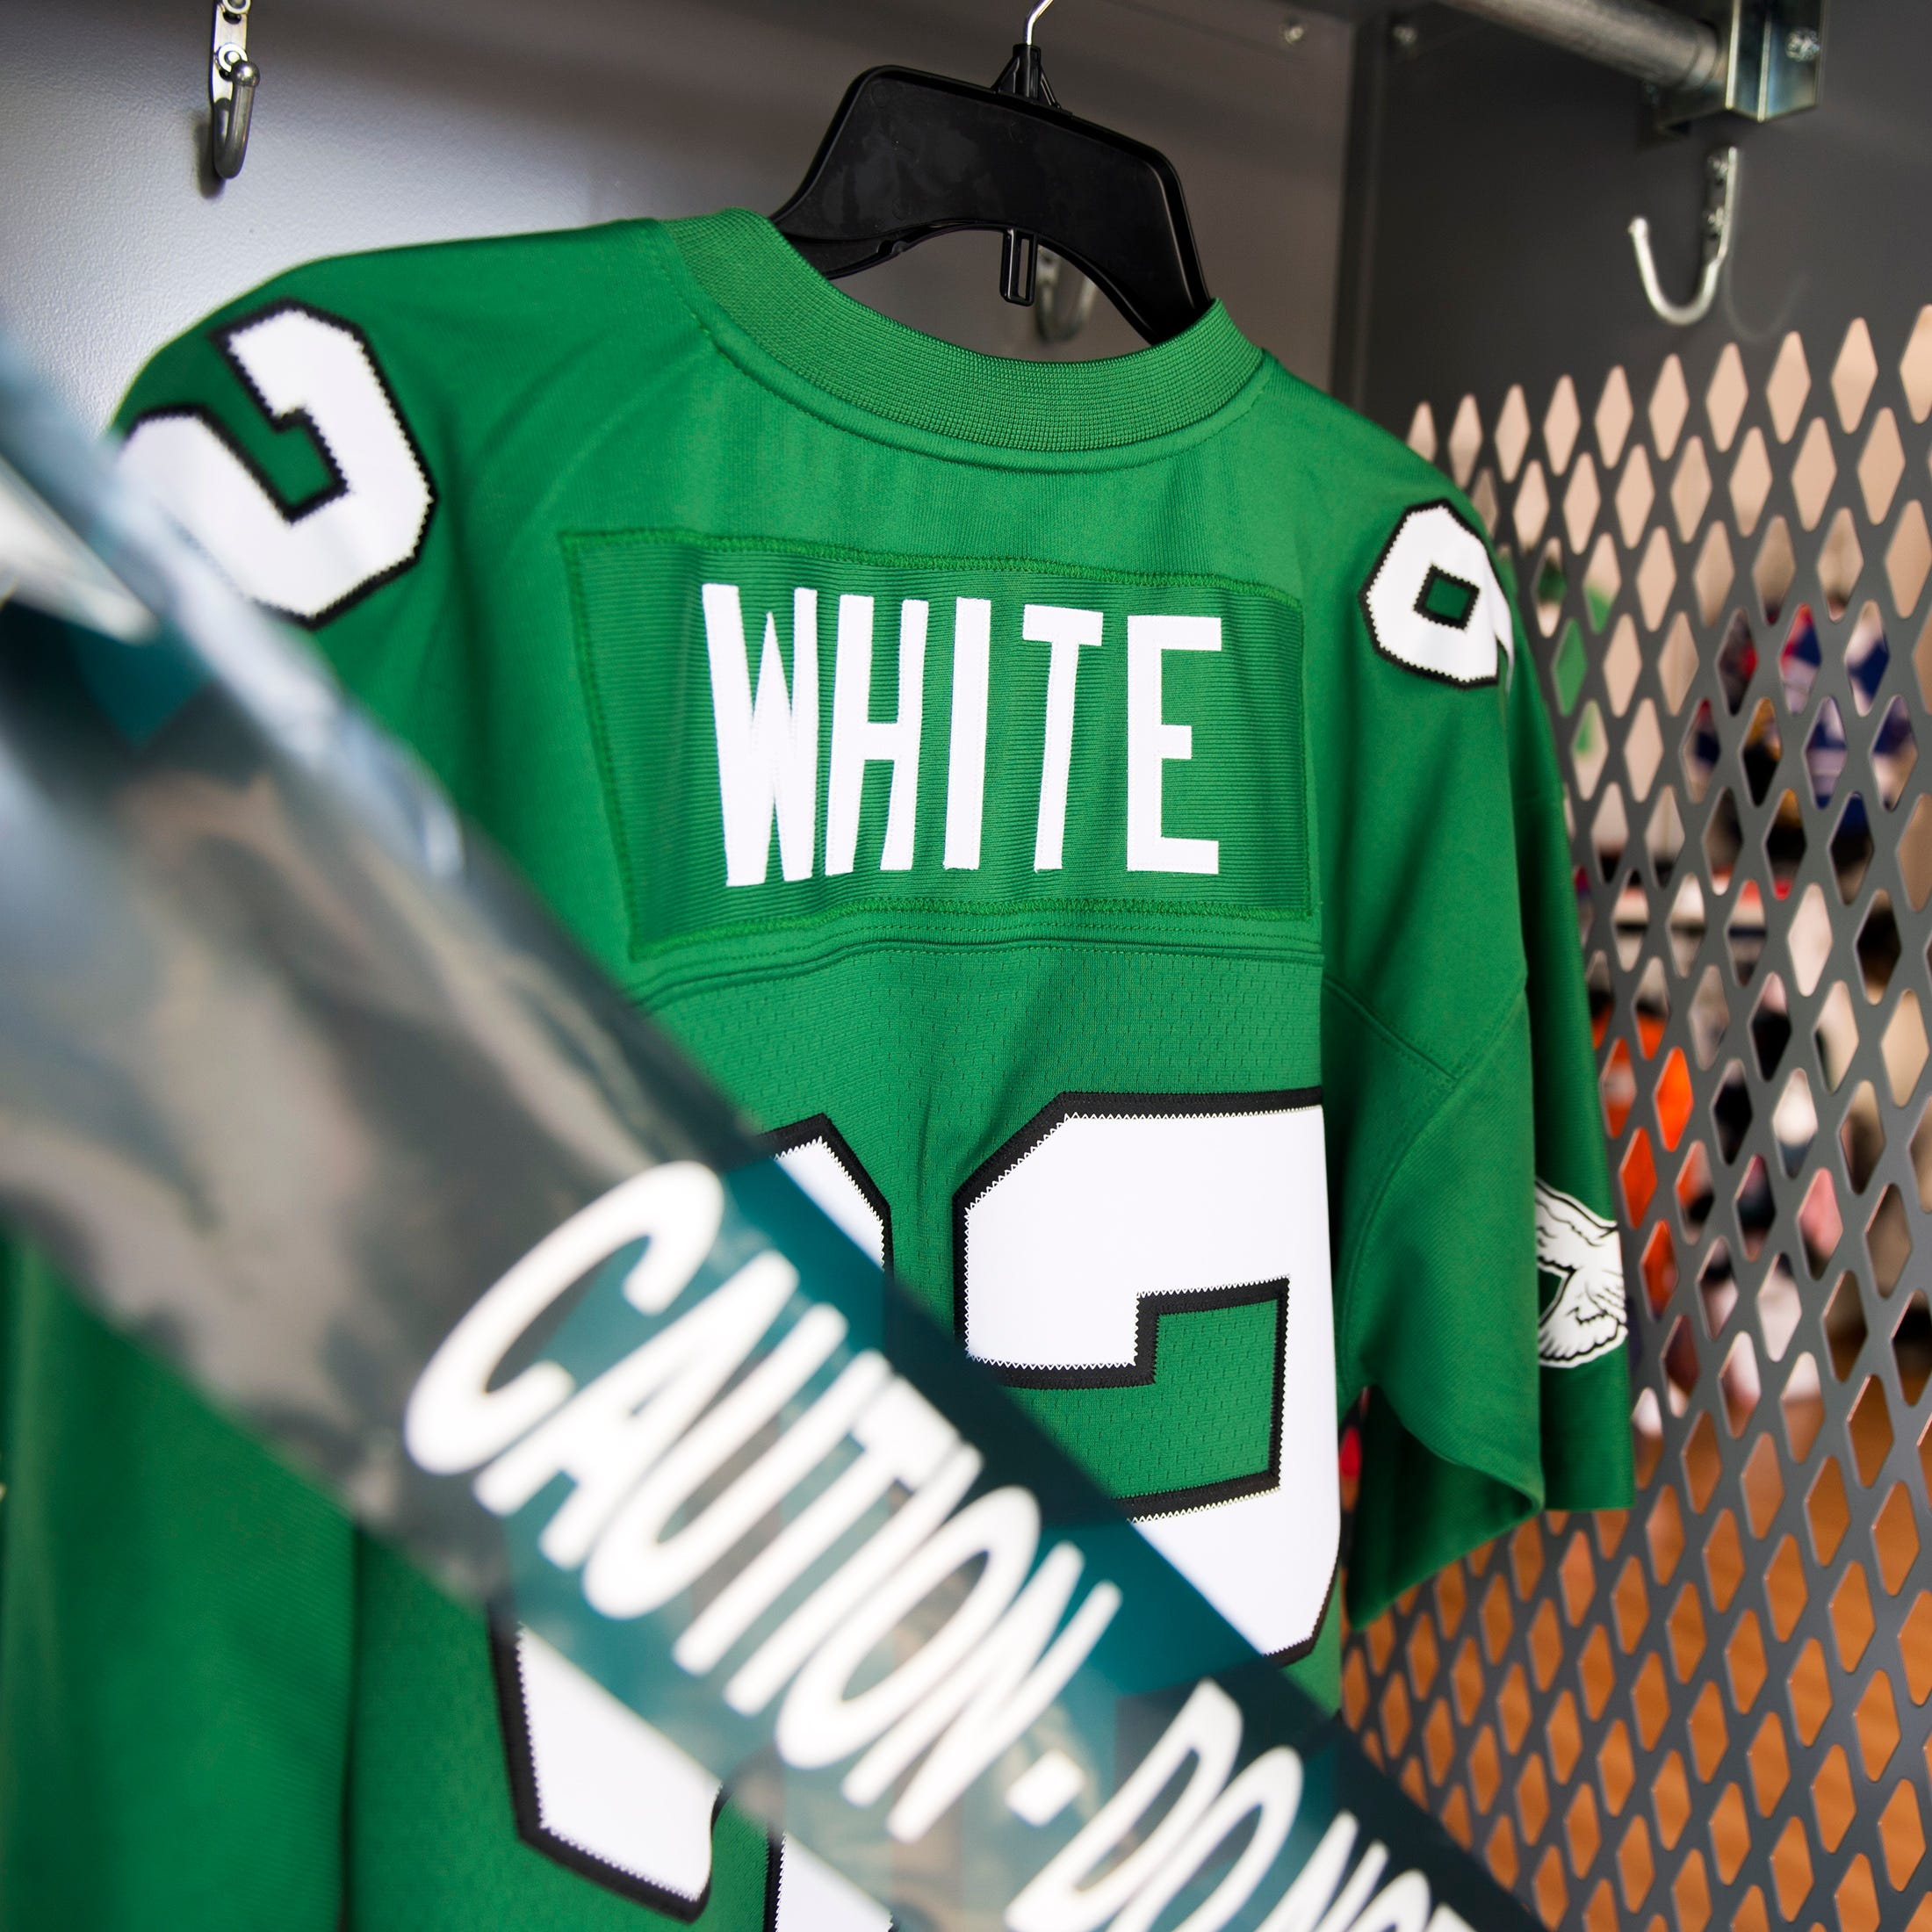 A throwback Reggie White jersey from Hello Sports Fans in Haddonfield.